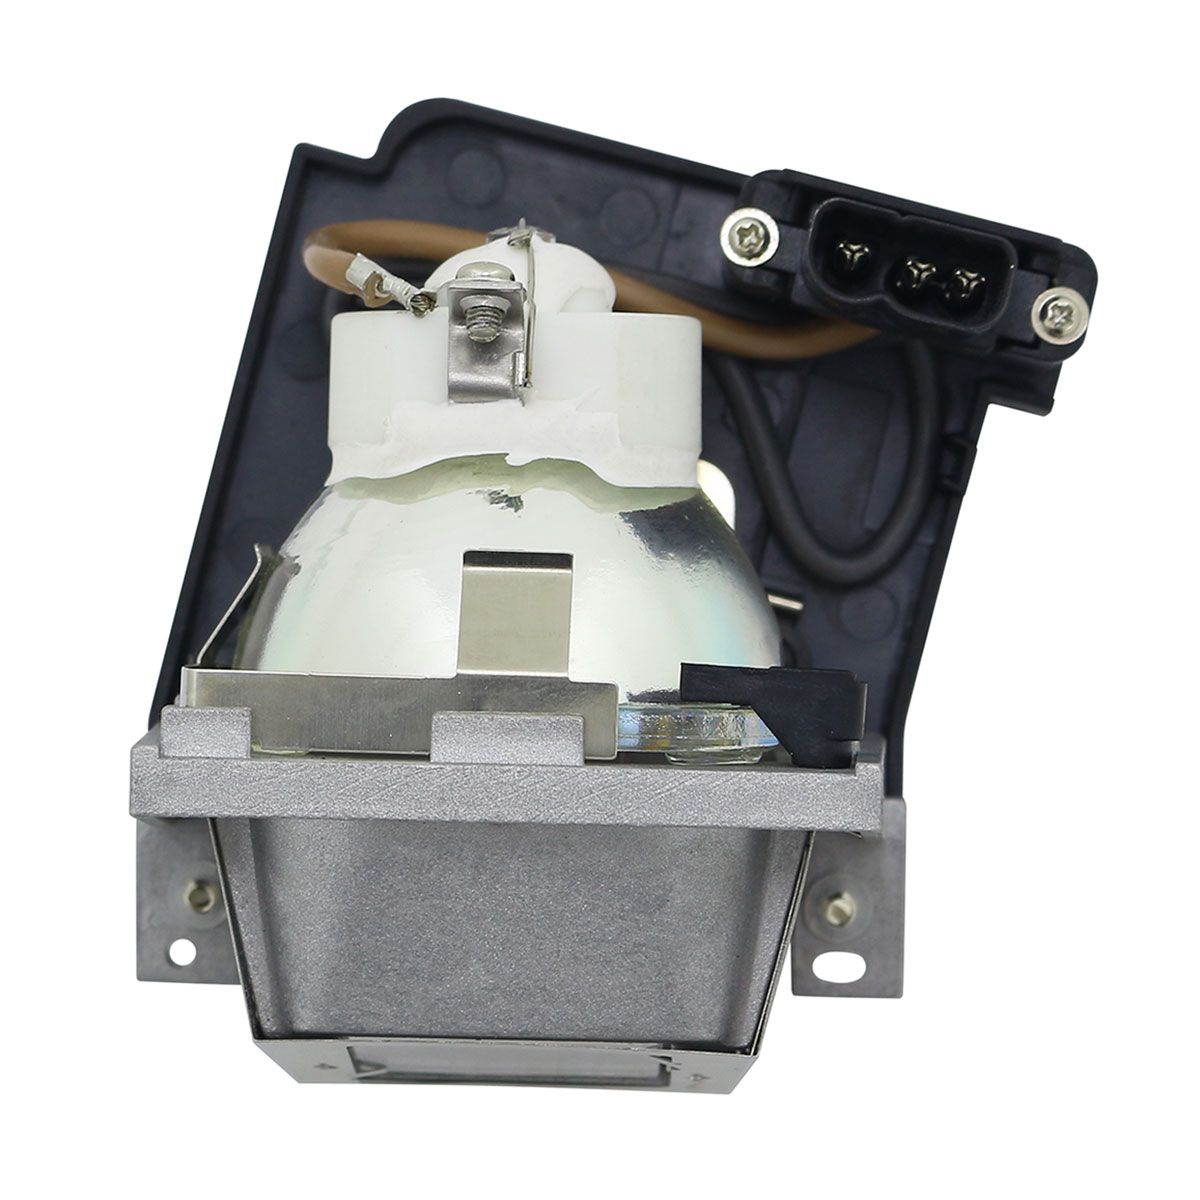 Lutema Economy for Mitsubishi LVP-XD105 Projector Lamp with Housing - image 1 of 5